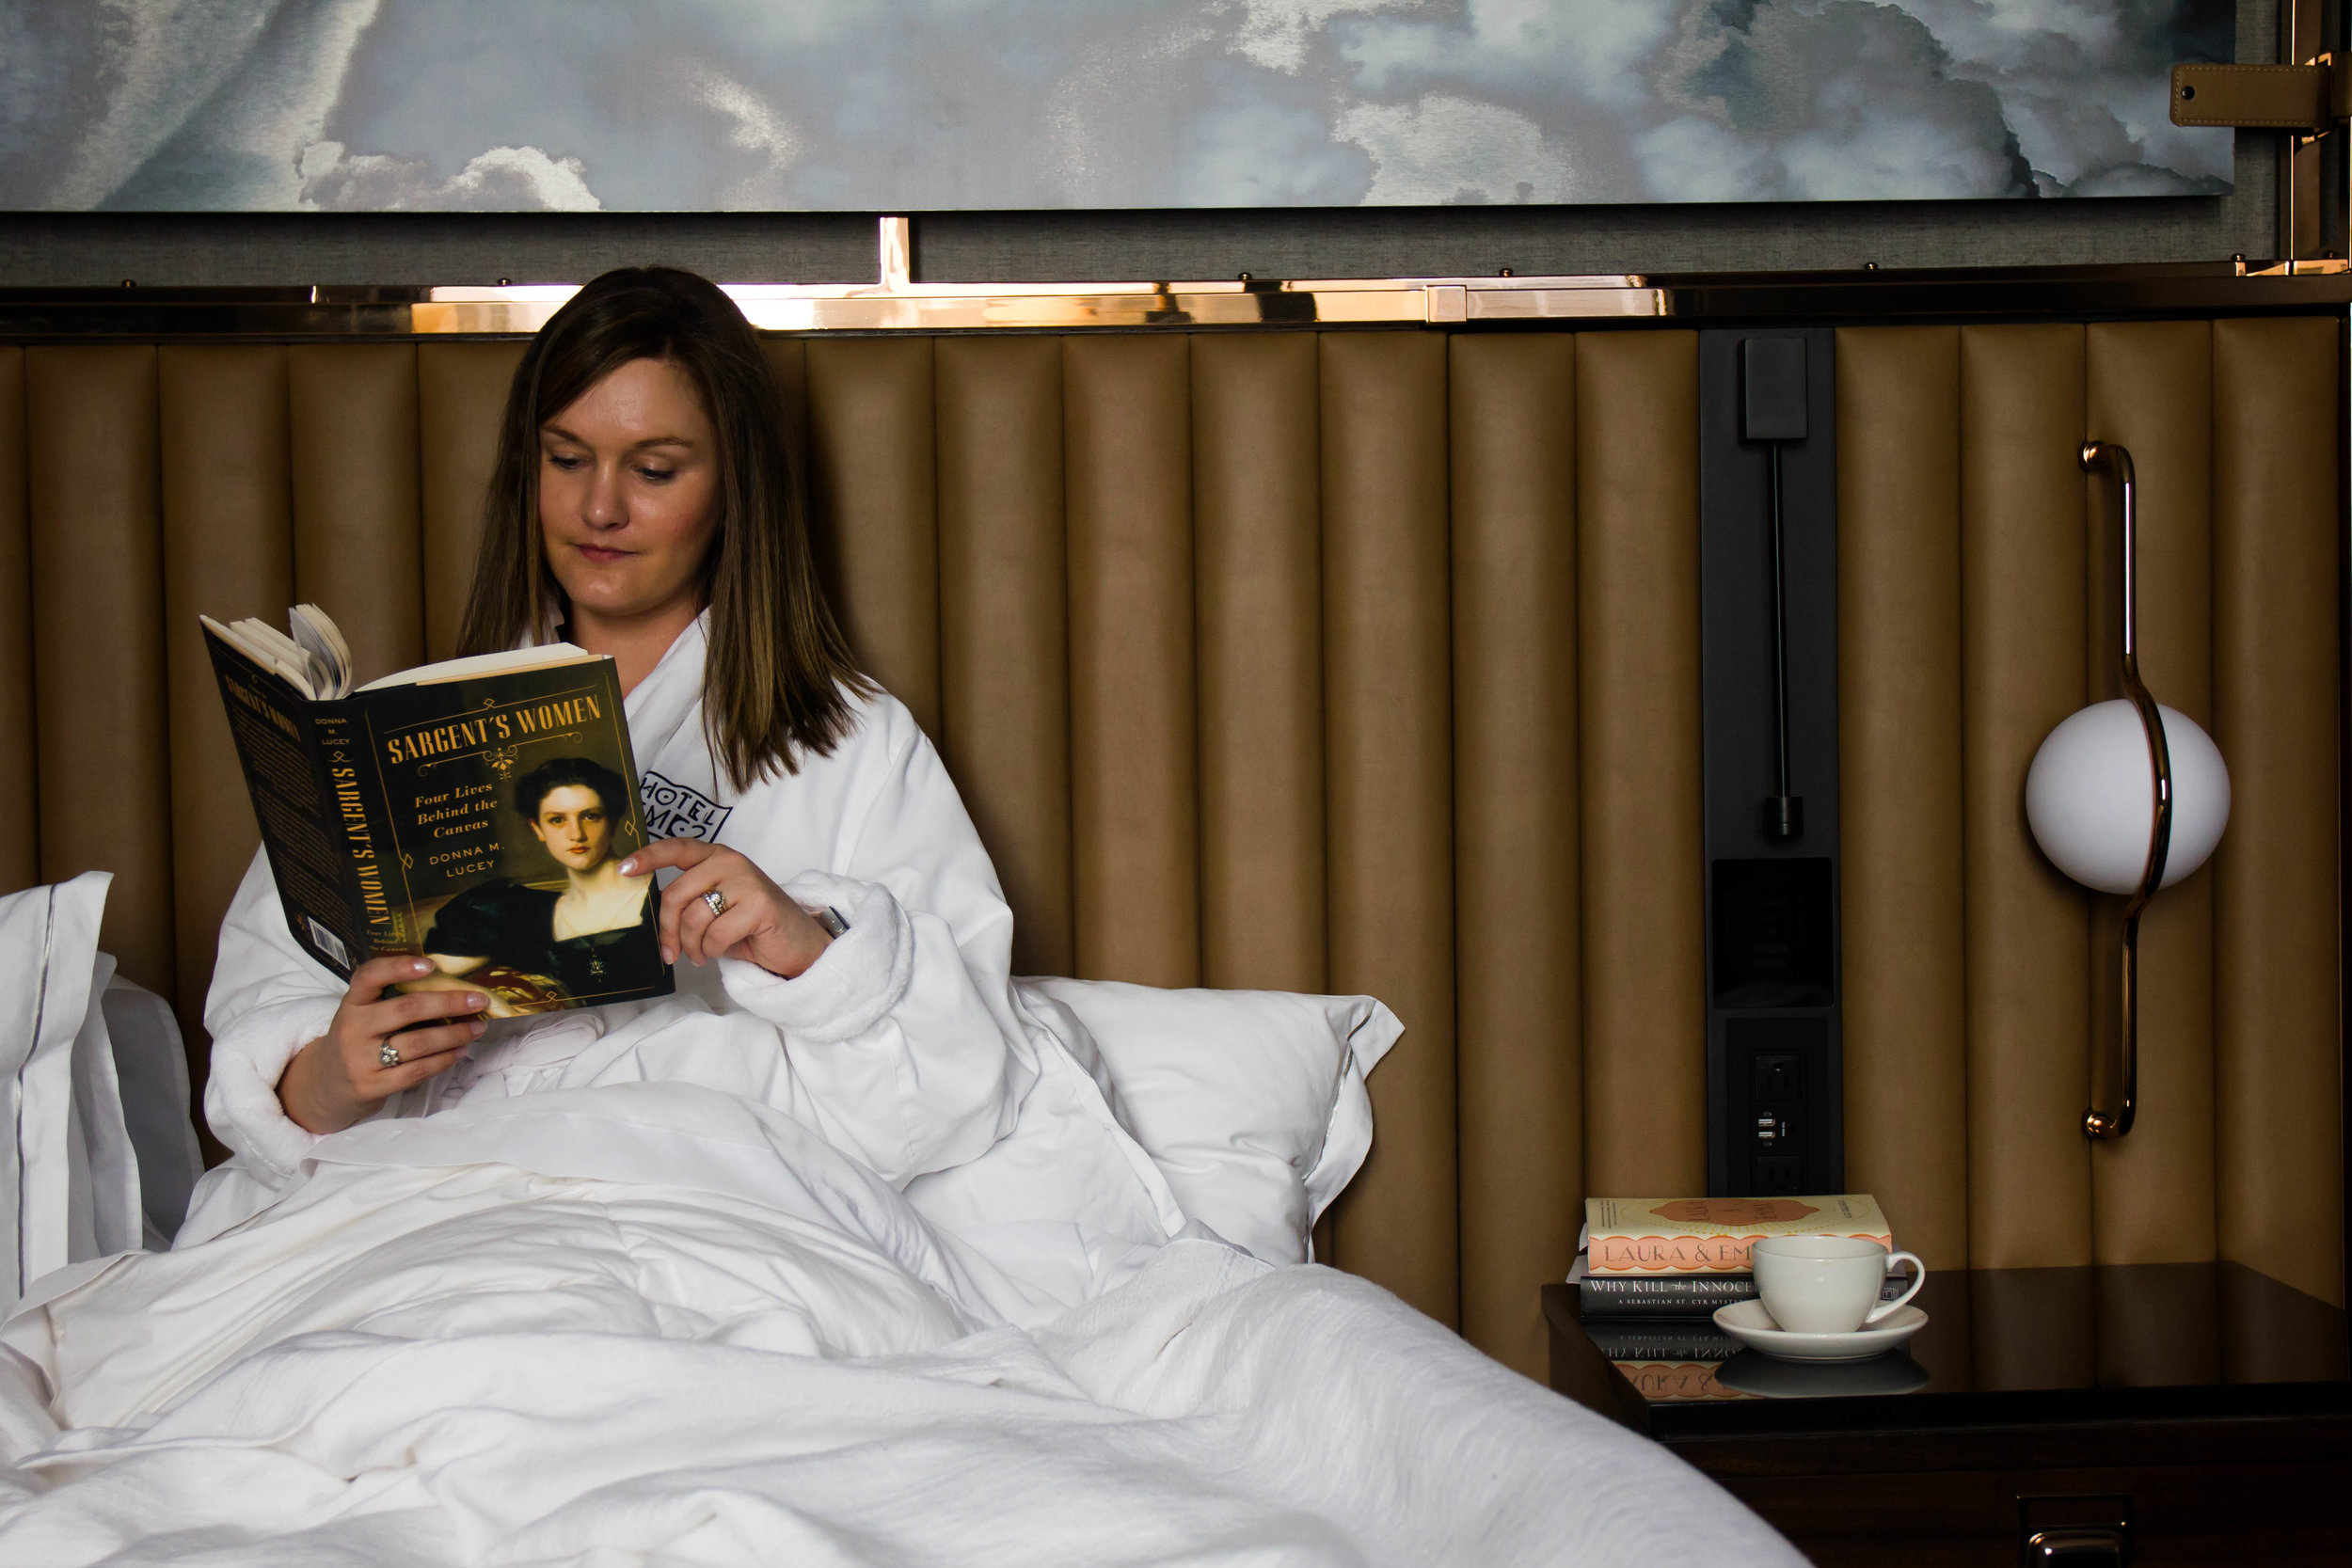 Reading Sargent's Women by Donna M. Lucey at EMC2 hotel in Chicago, IL